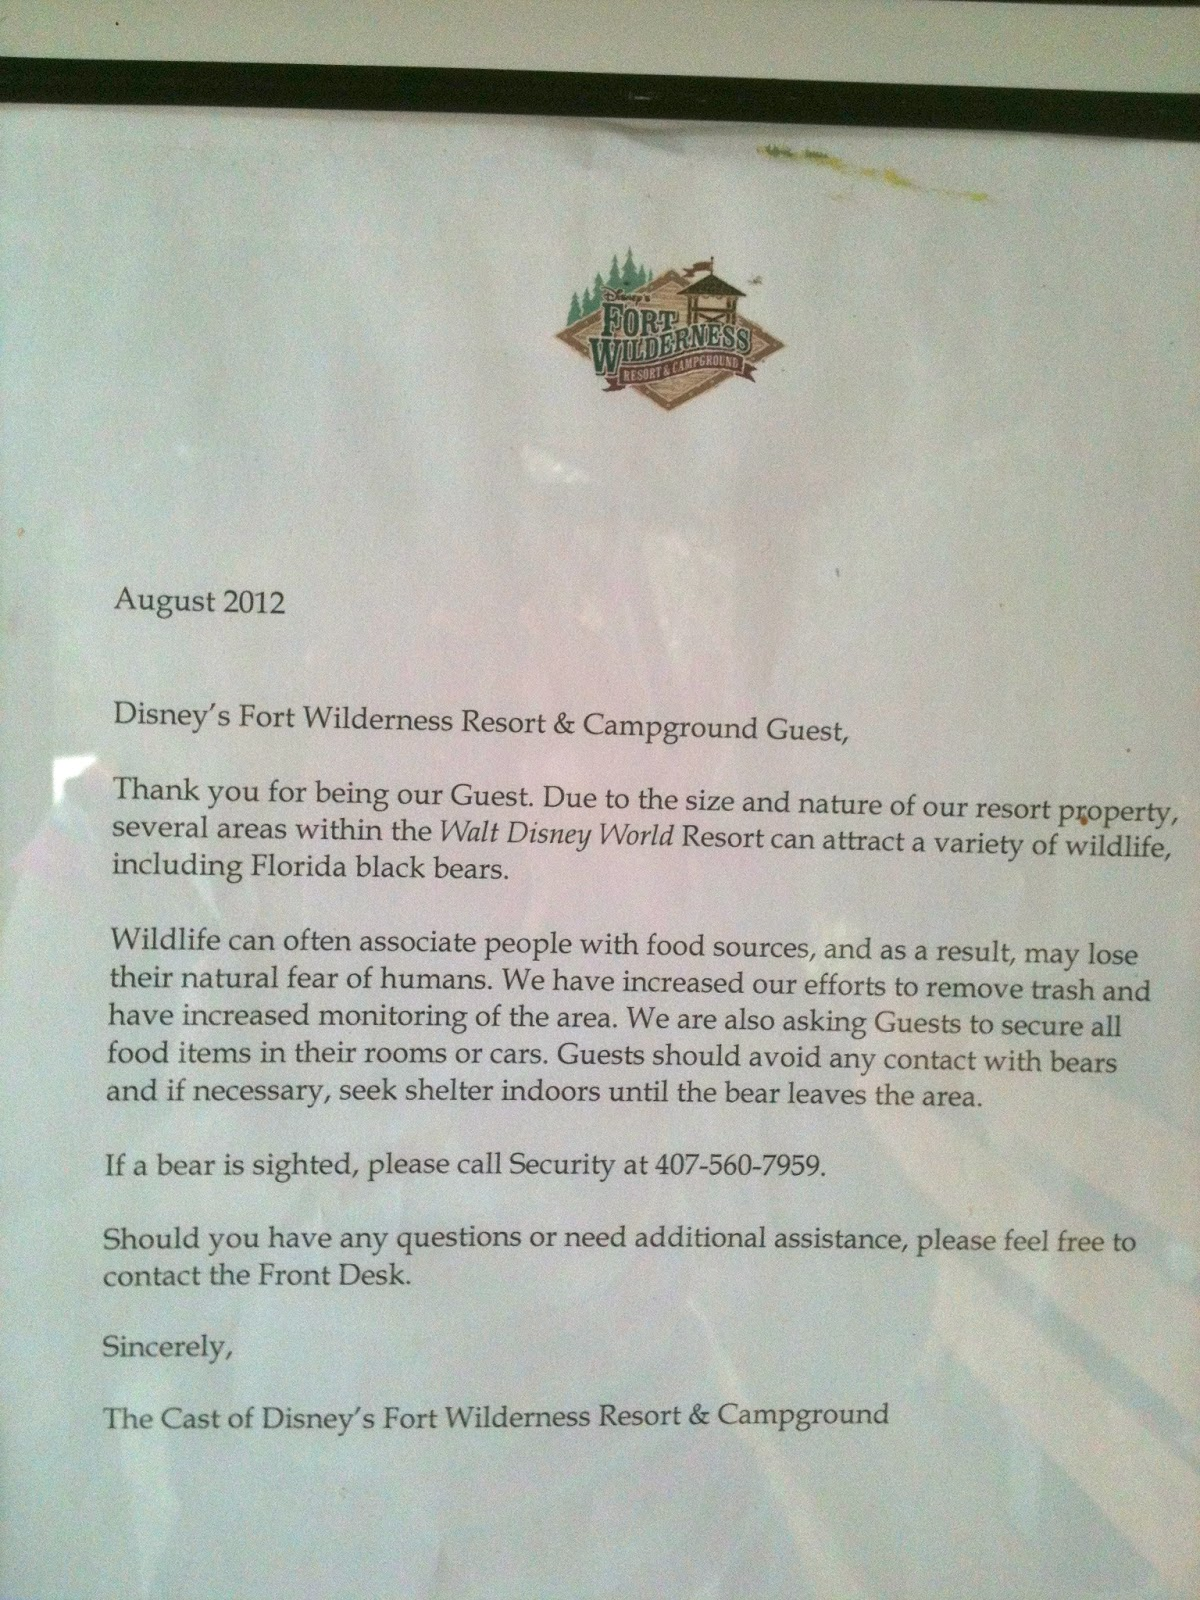 Notice about Black Bears - Tent Camping in Fort Wilderness at The Walt Disney World Resort